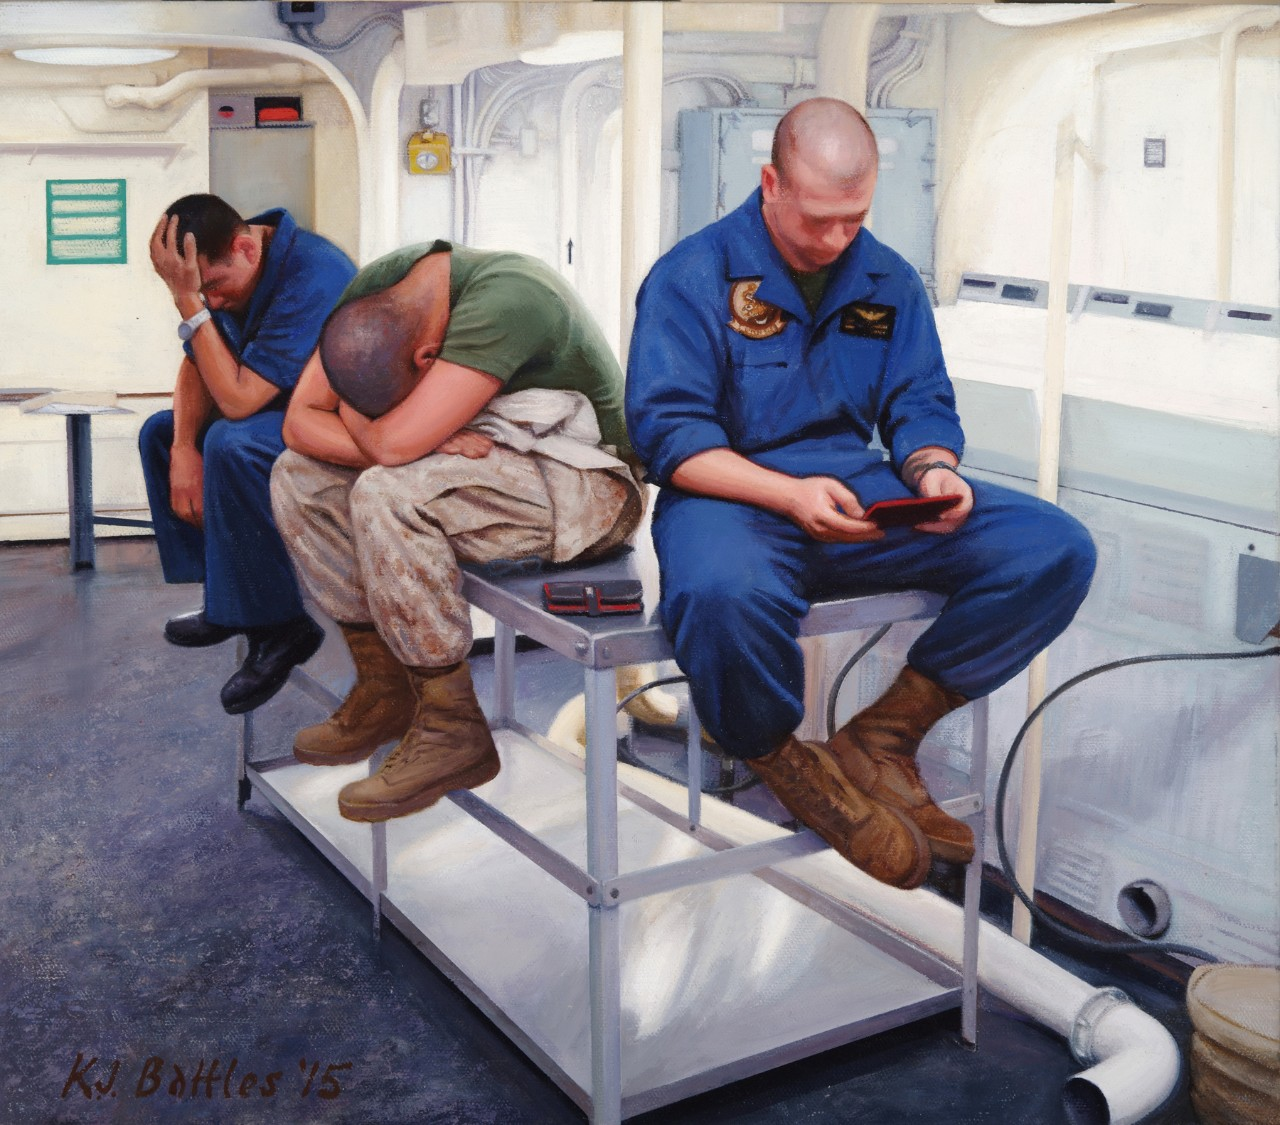 Three crewmen sit on a table in the laundry room looking bored